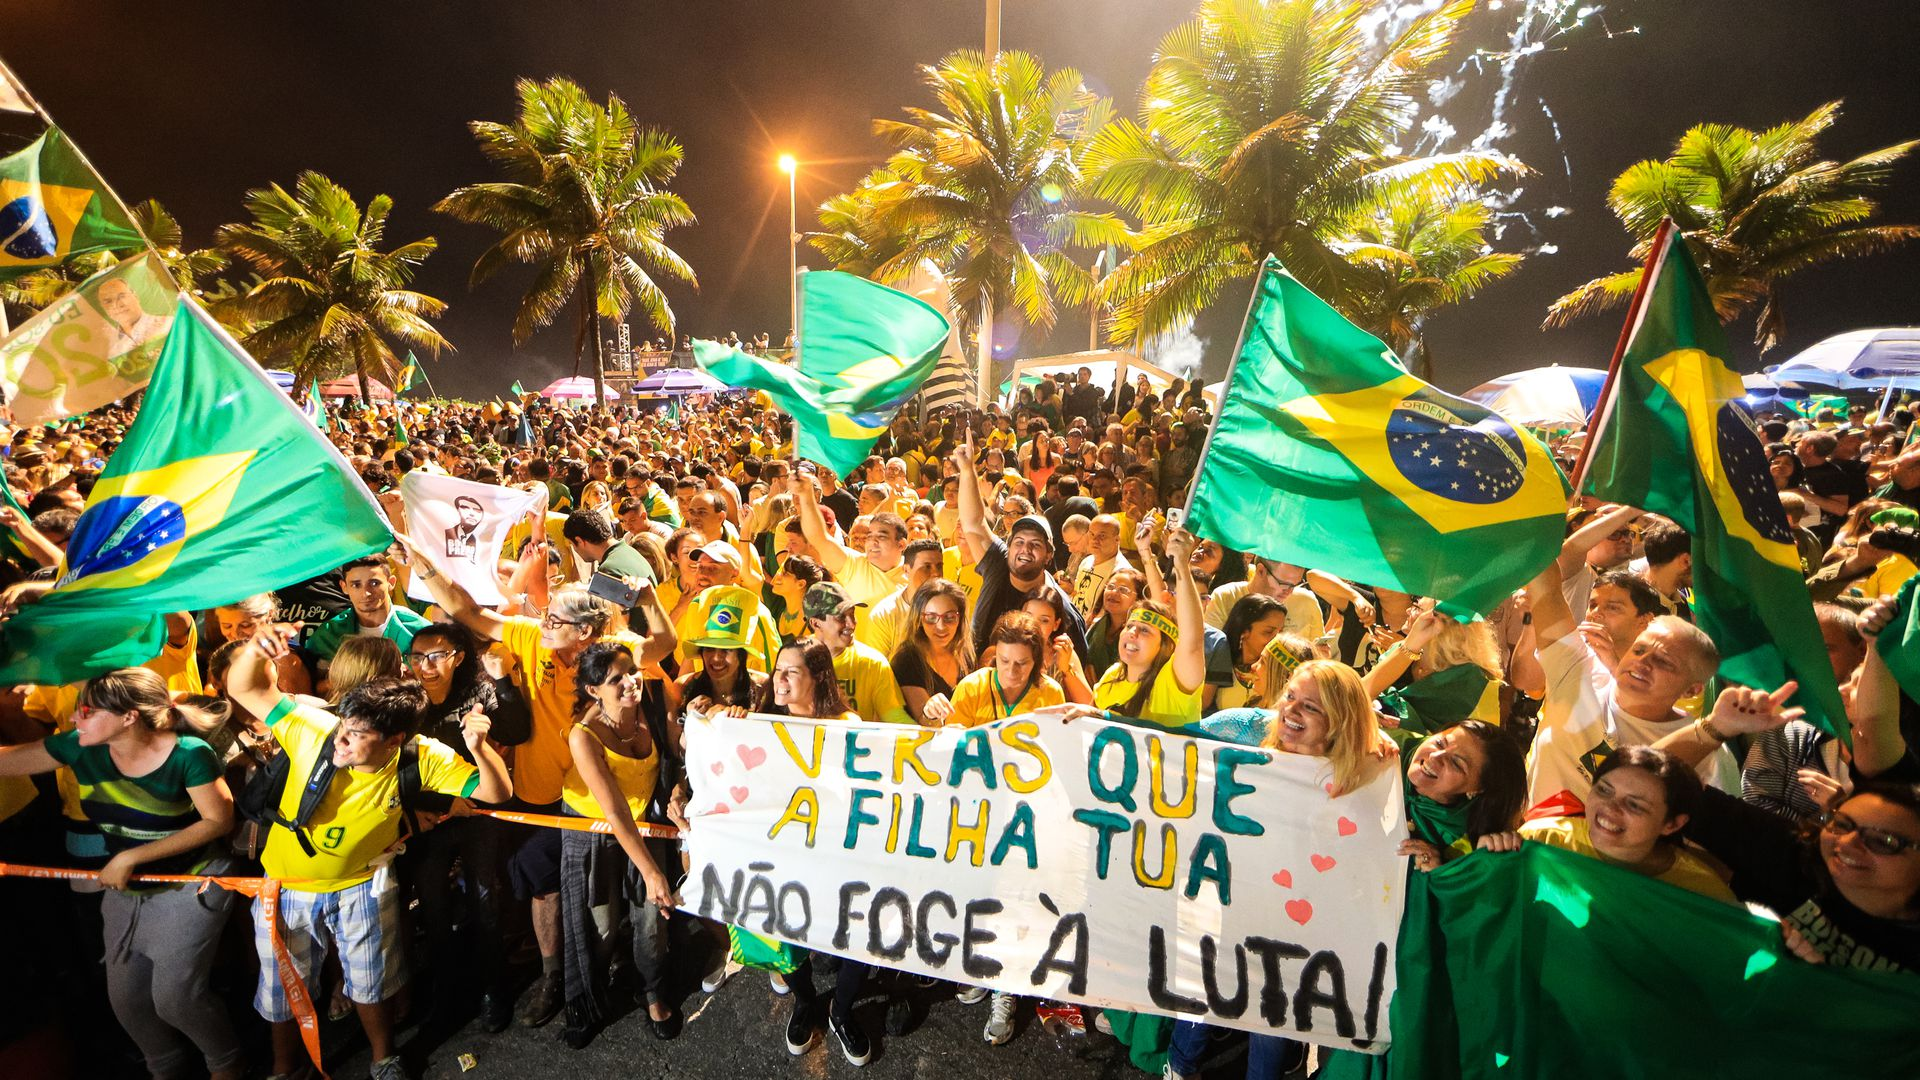 Jair Bolsonaro supporters celebrate